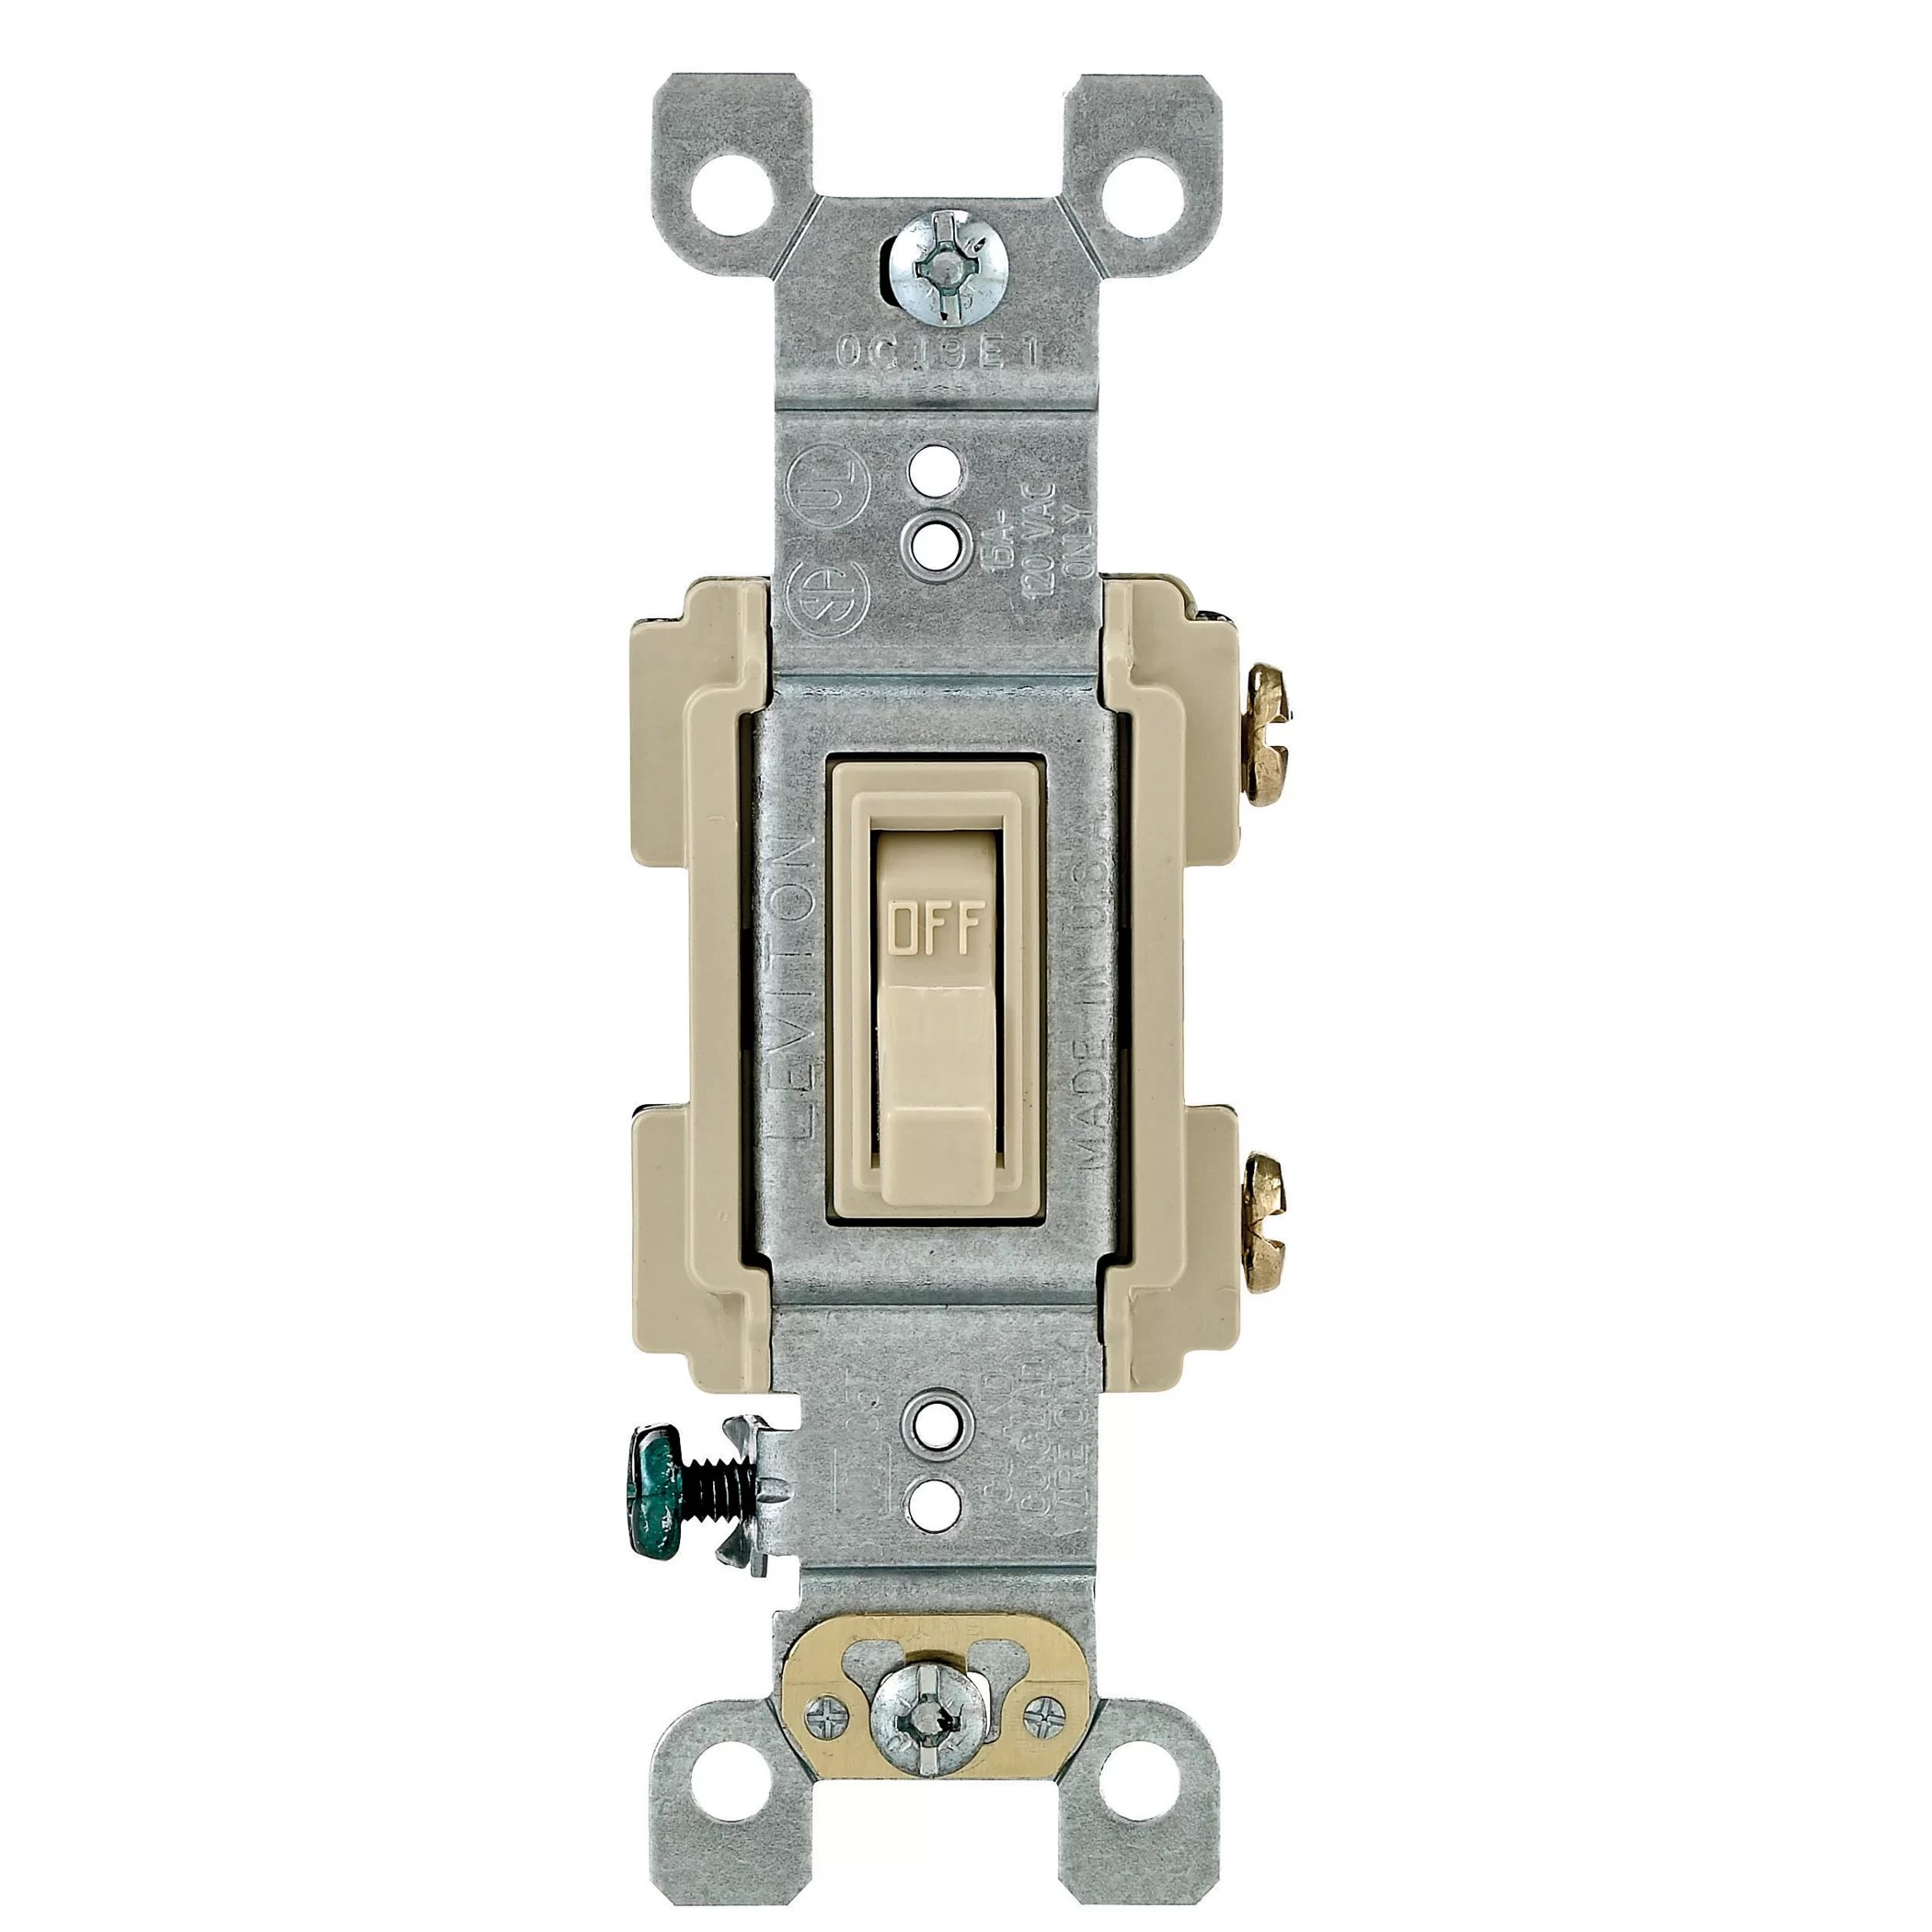 leviton single pole toggle switch jpg leviton single pole wiring diagram leviton auto wiring diagram 2100 x 2100